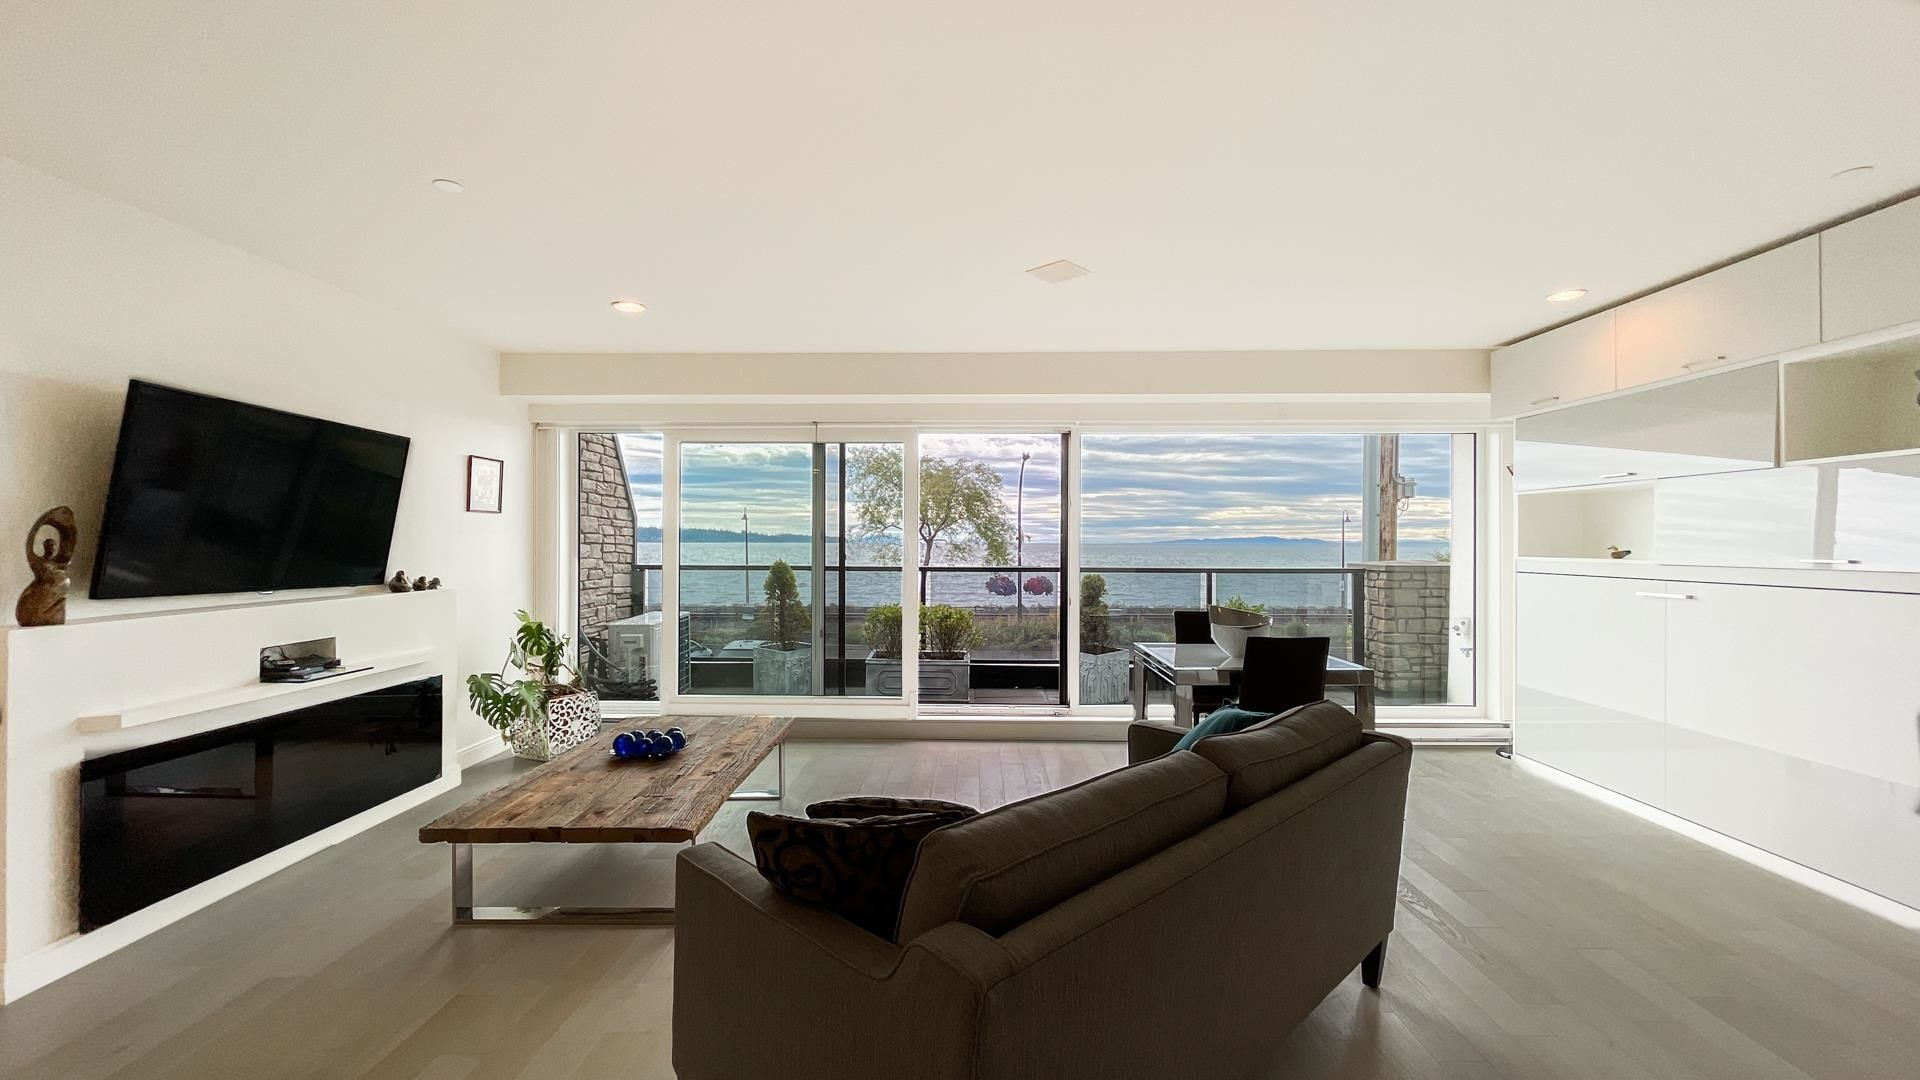 """Main Photo: 201 15581 MARINE Drive: White Rock Condo for sale in """"WAVES ON MARINE"""" (South Surrey White Rock)  : MLS®# R2608896"""